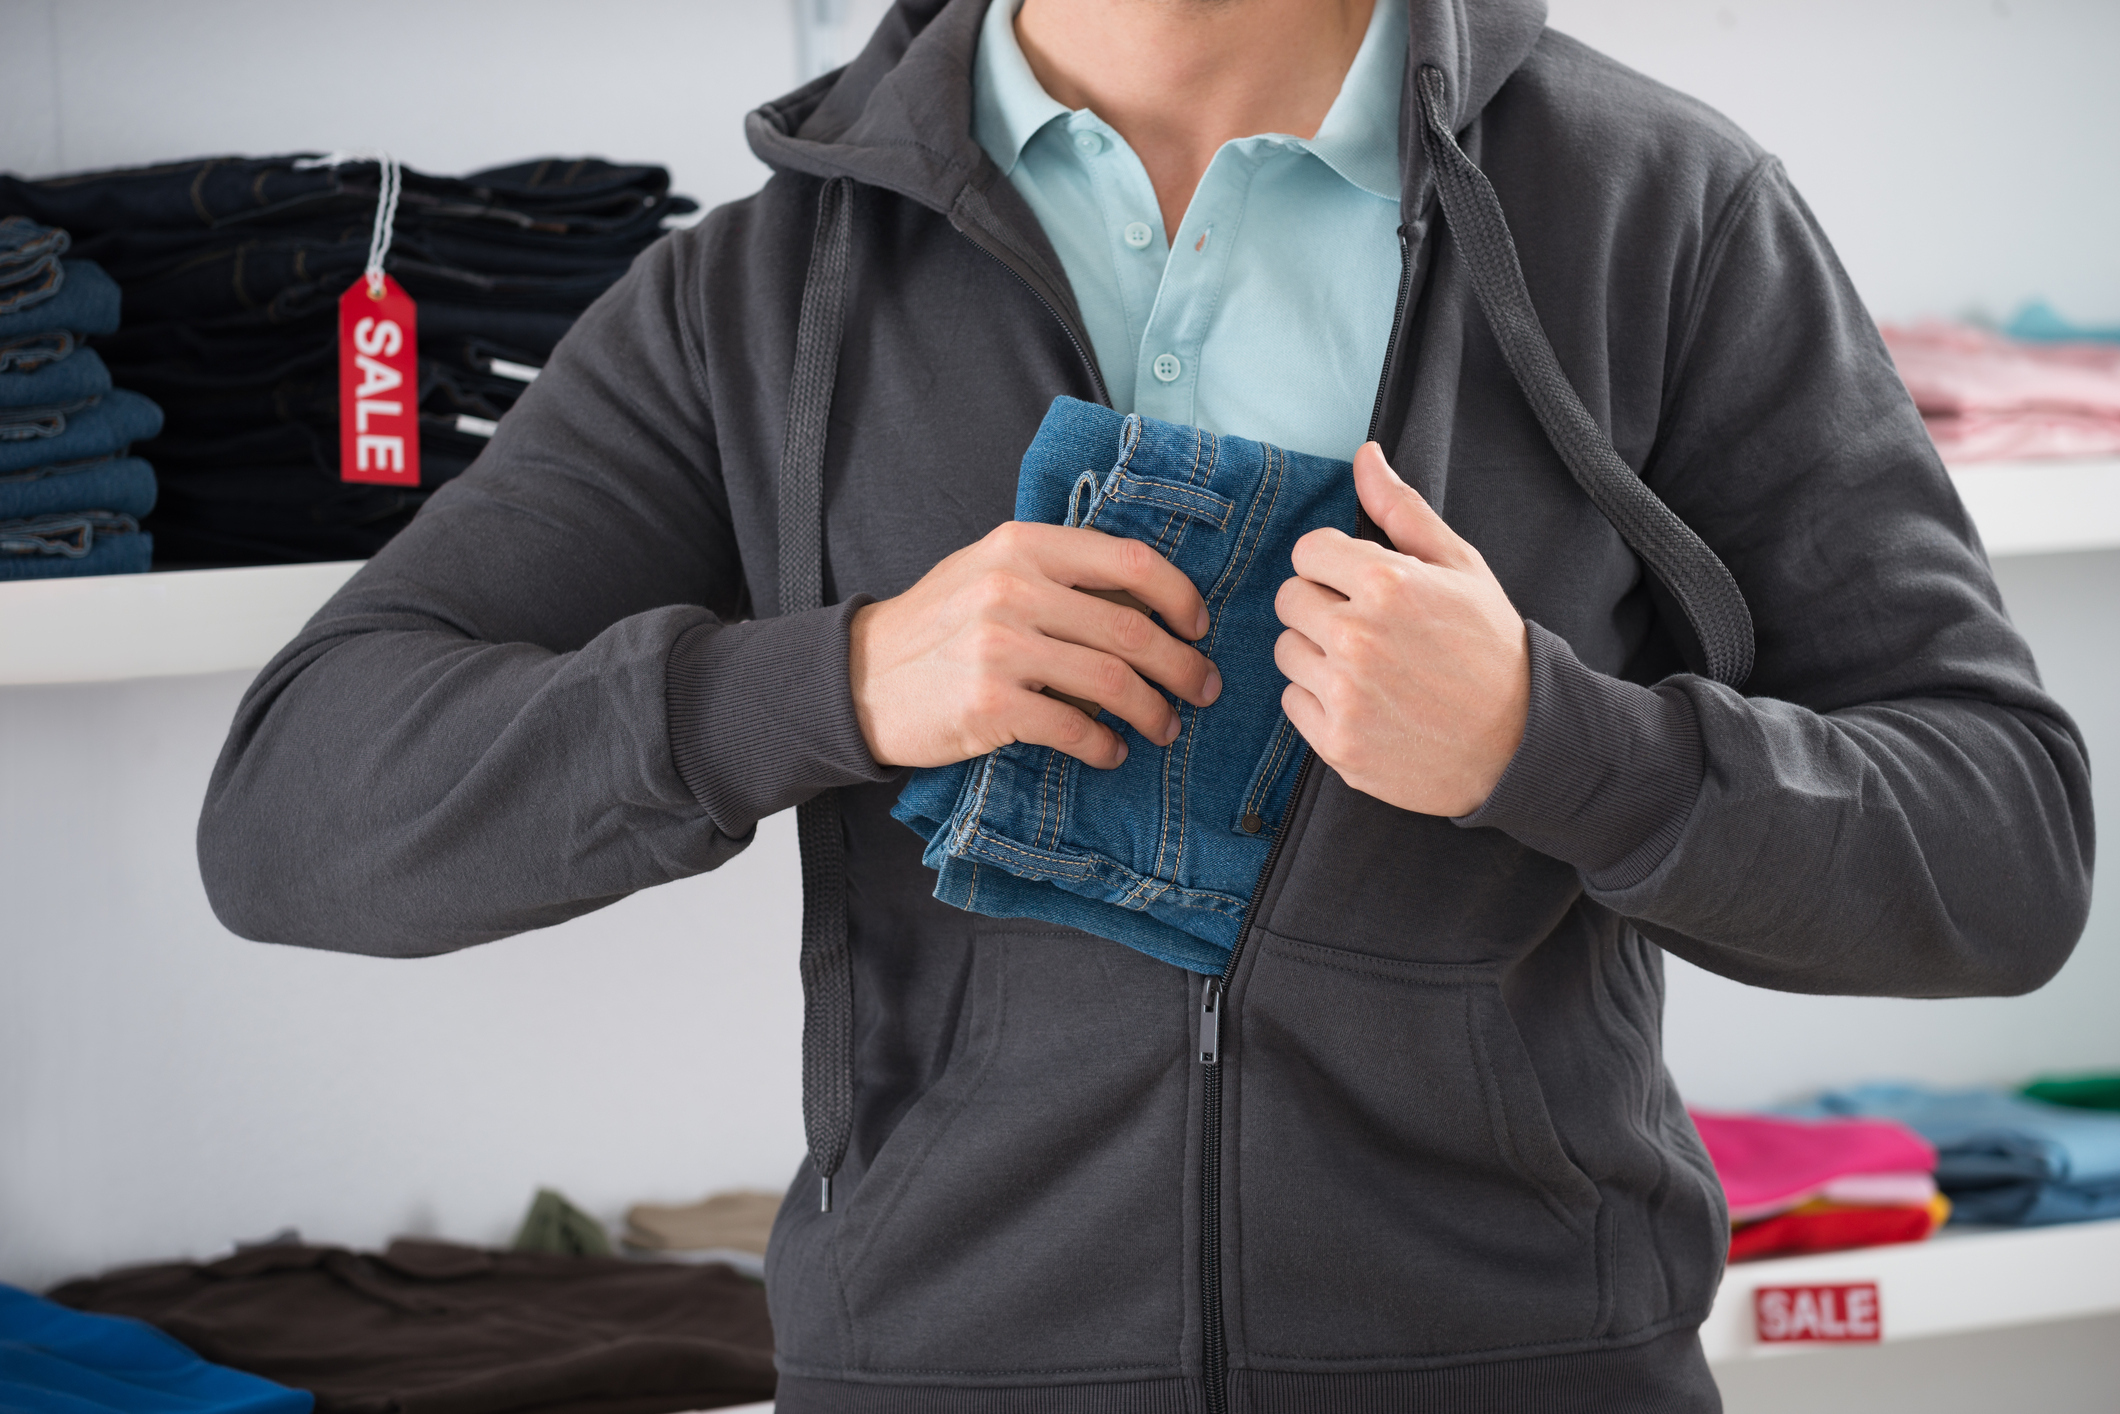 Midsection of man hiding jeans in jacket at store.